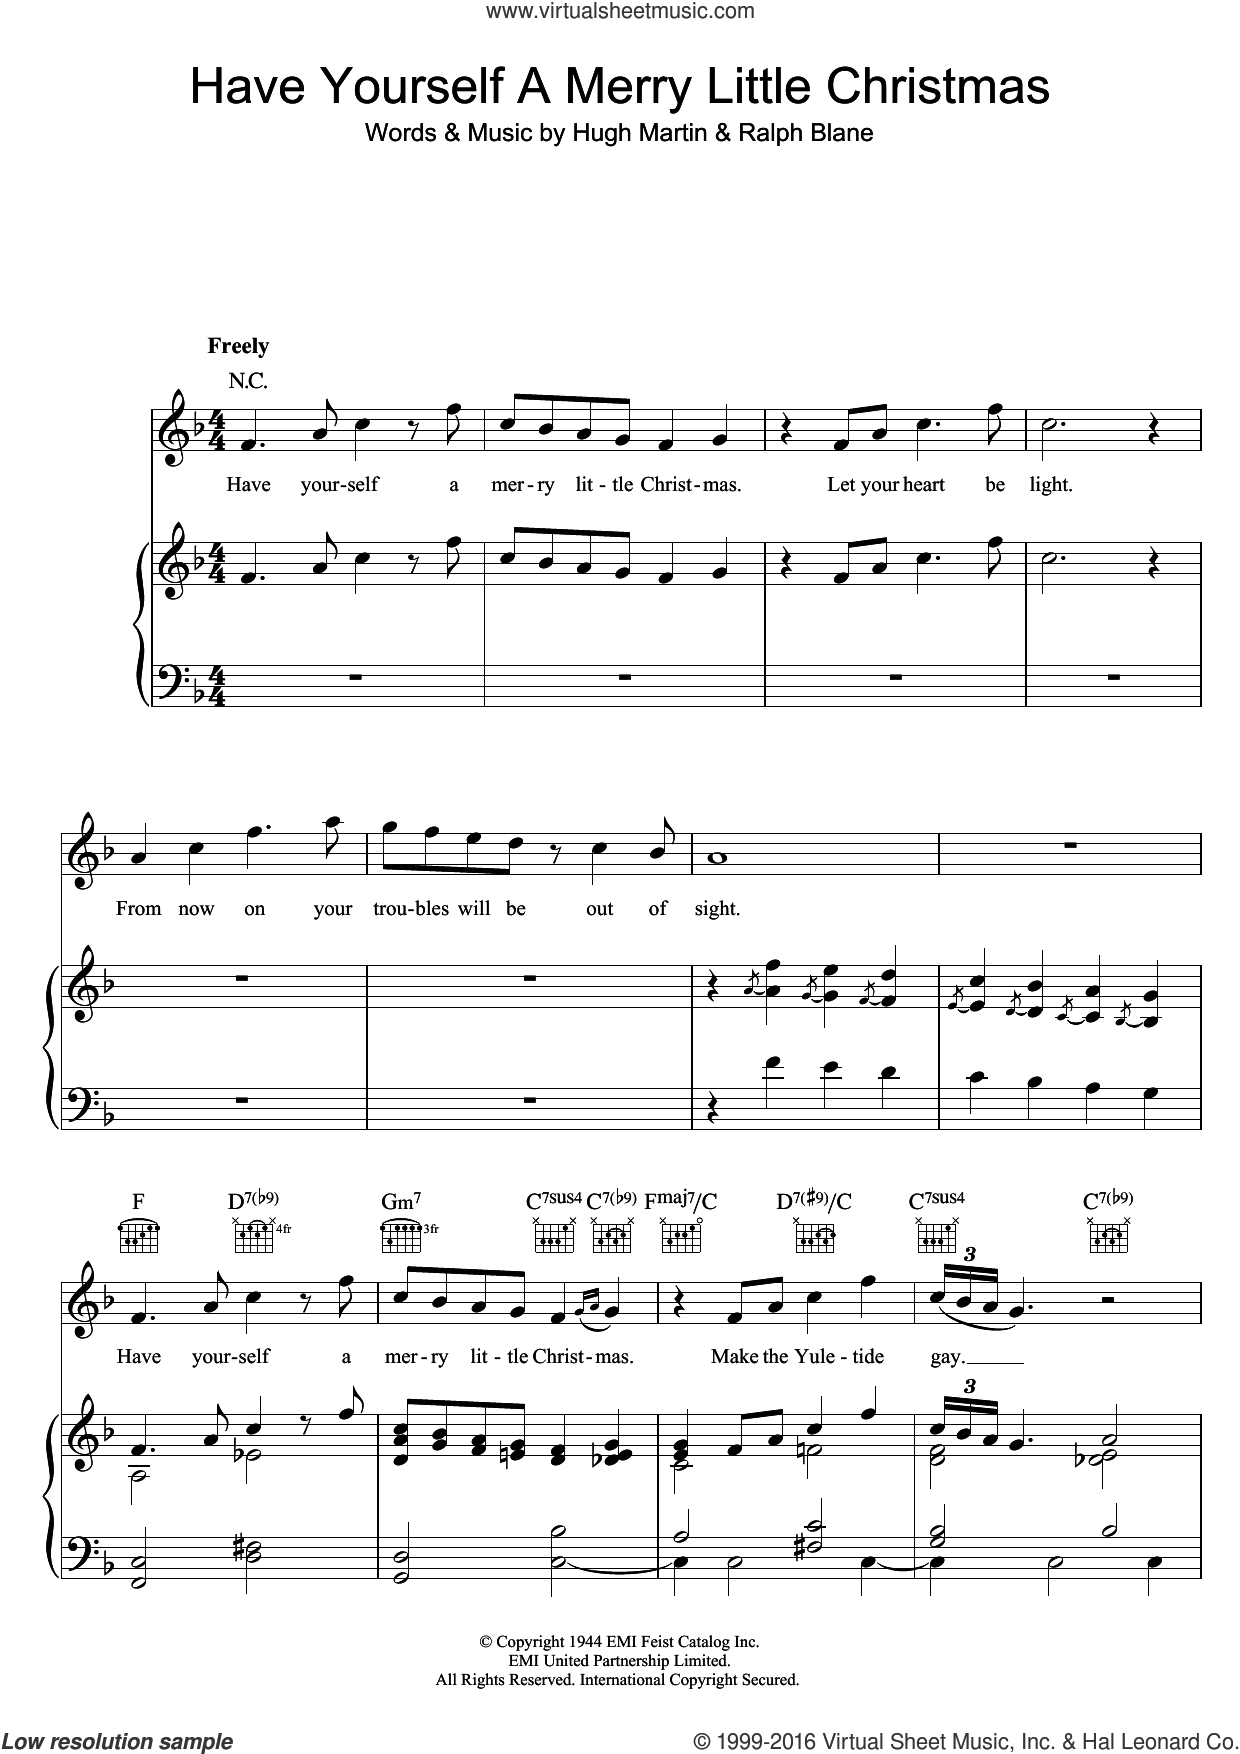 have yourself a merry little christmas sheet music for voice piano